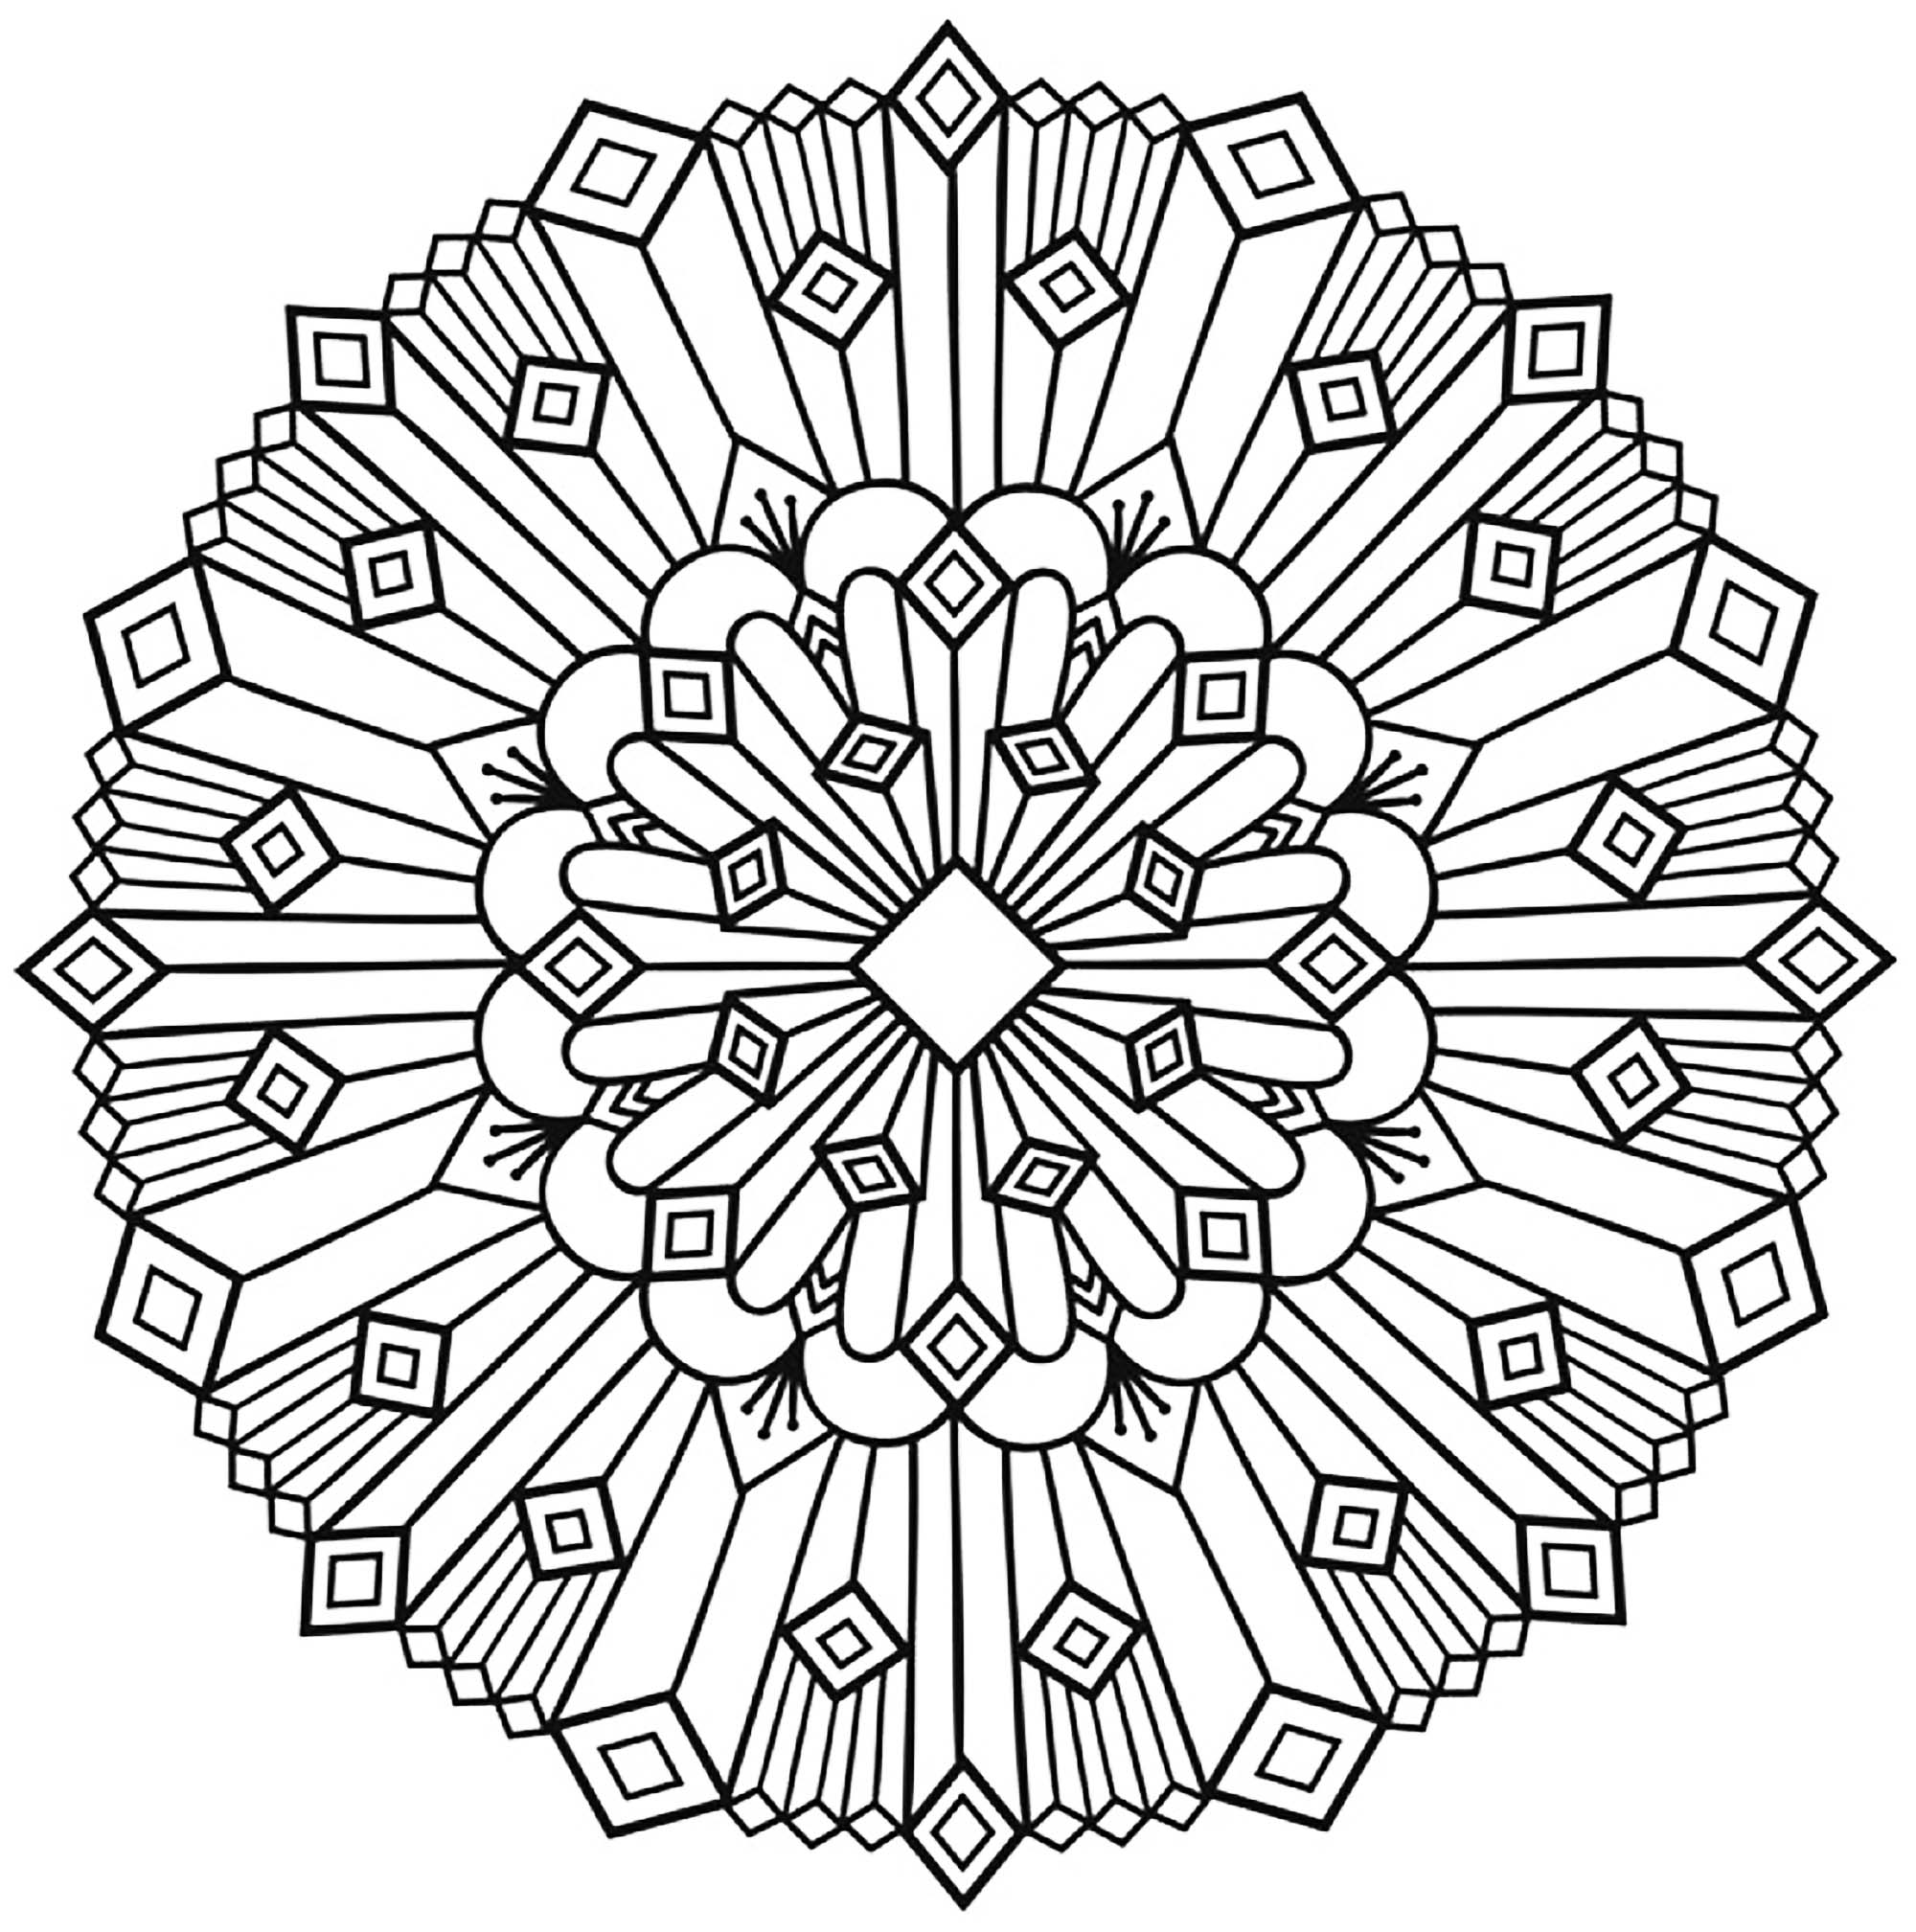 Art Deco Mandala - Simple Mandalas - 100% Mandalas Zen & Anti-stress